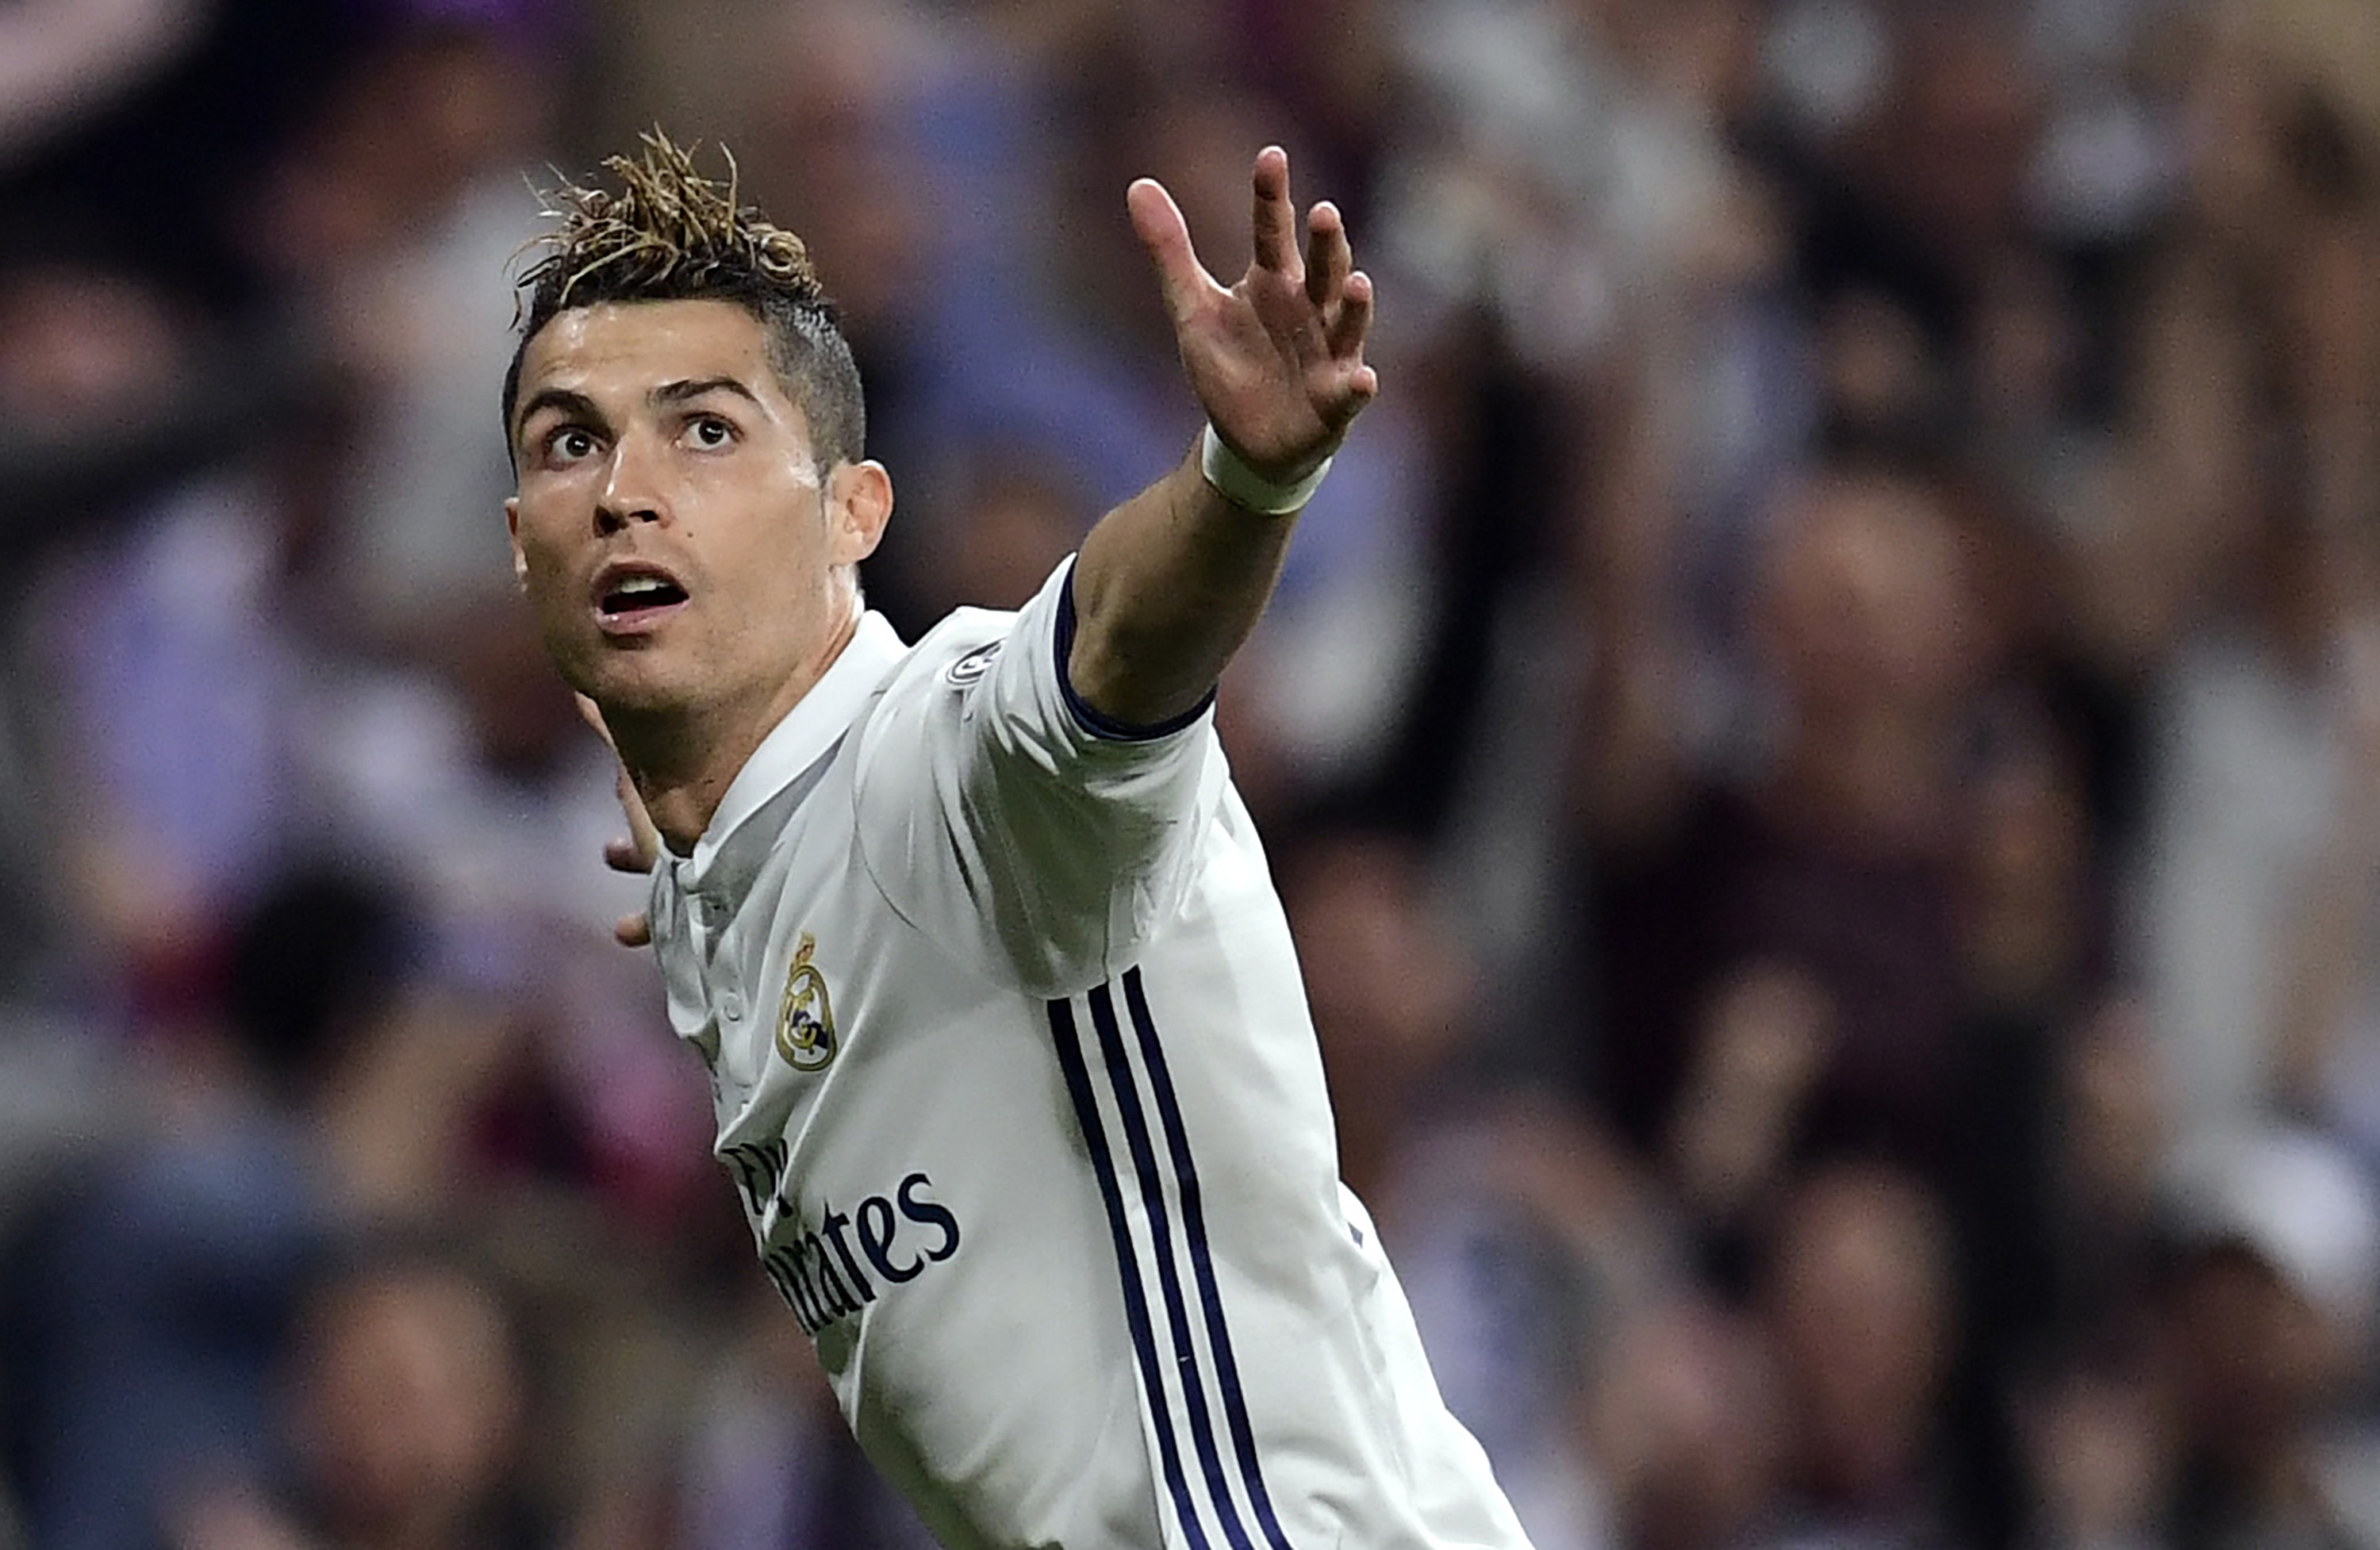 ronaldo highlights, real madrid atletico madrid, champions league, champions league schedule, madrid second leg schedule